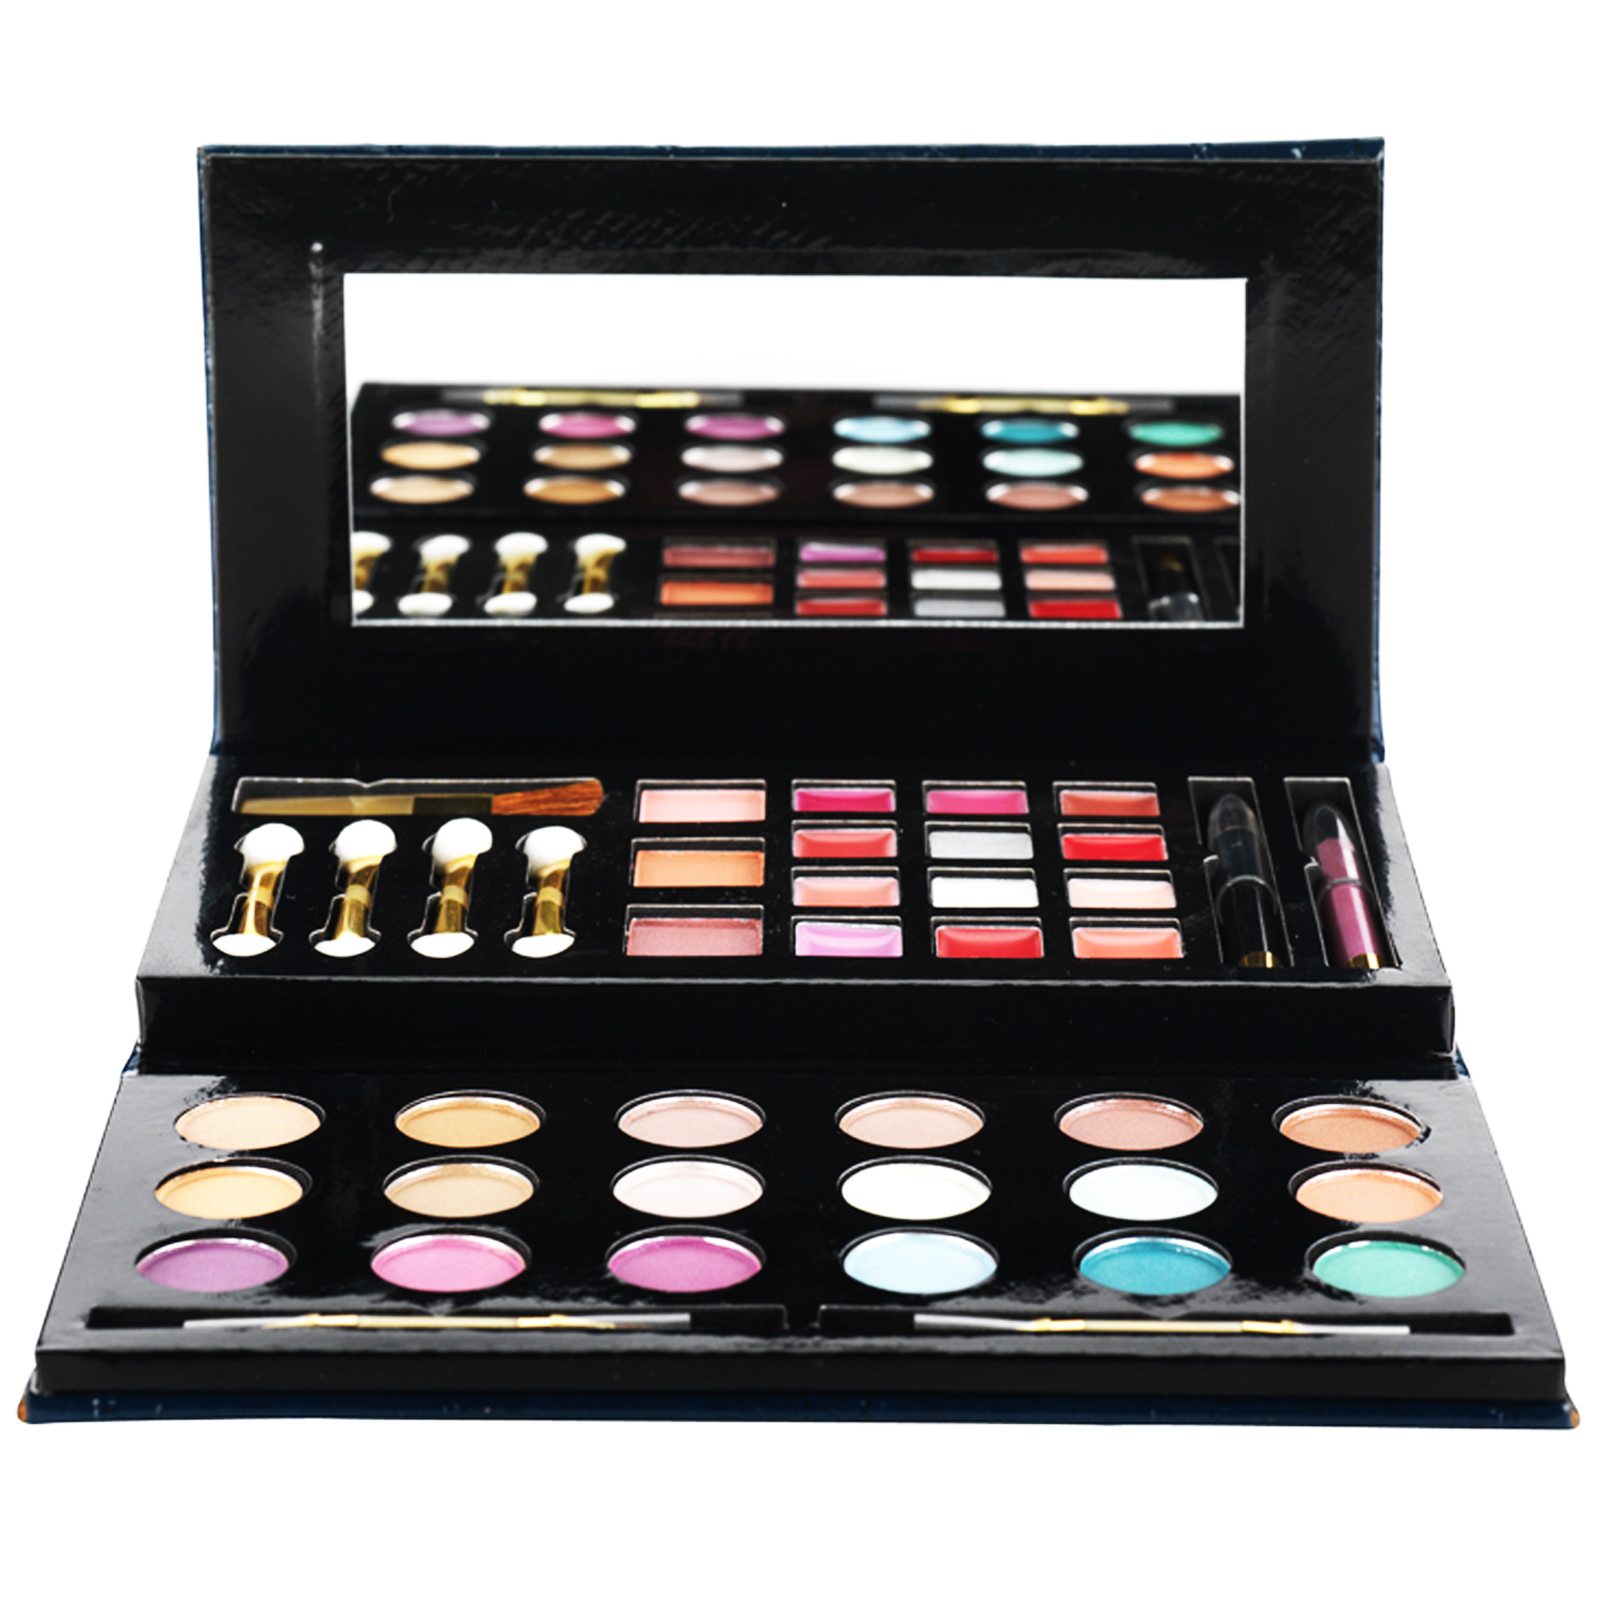 """Full Face Makeup Set worth £ Quantity. Add to bag, Triple Decker Decadence. Gimme Some Sugar. """"recipe for sexy!"""" full-face makeup kit worth £ Quantity. Add to bag, Homemade Hotness. get the pretty started! Benefit Cosmetics LTD. Laughter is the best cosmetic ©, Benefit Cosmetics LTD."""